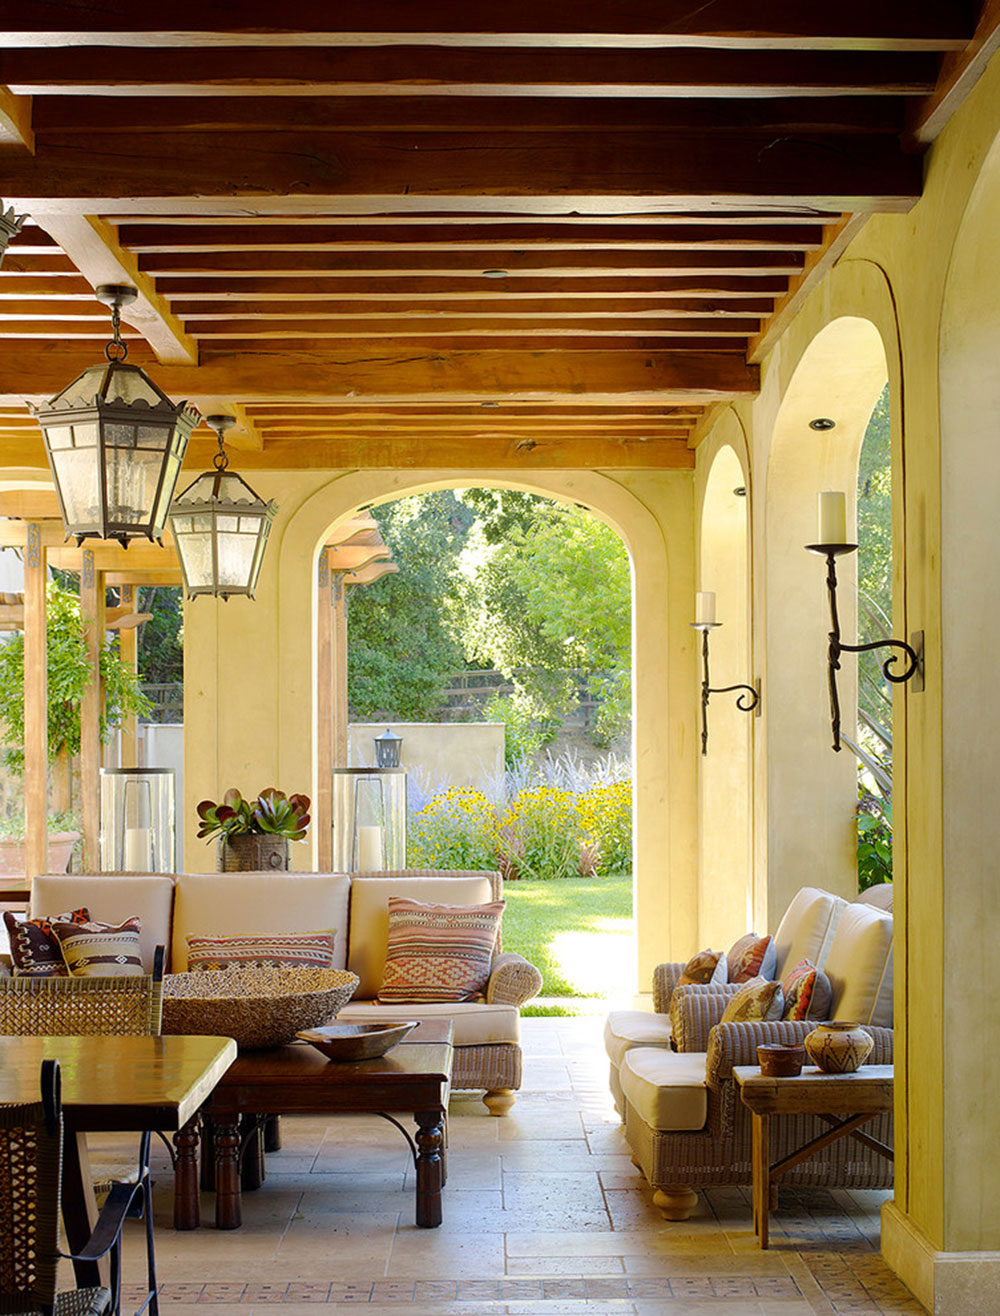 Outdoor-room-ideas-raising-the-family-together4 outdoor-room-ideas that keep the family together